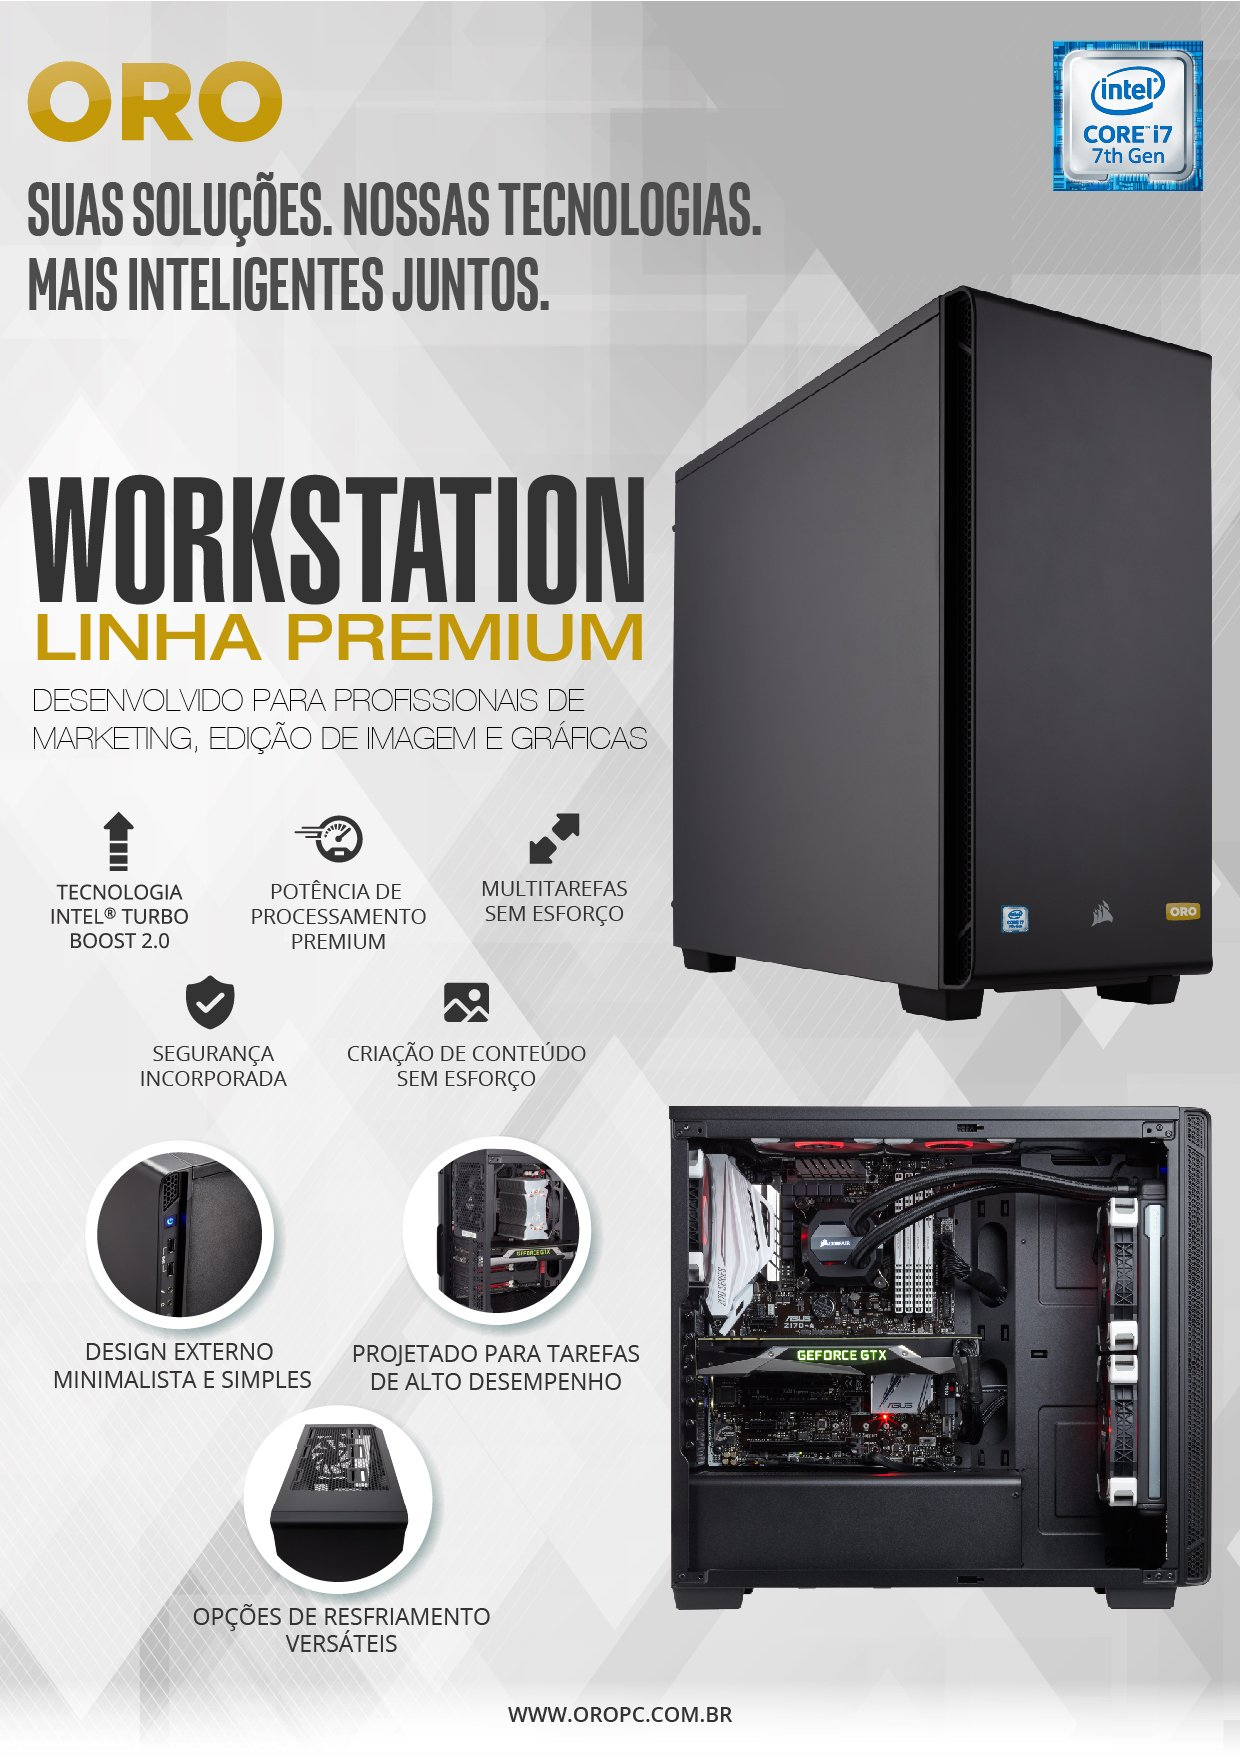 WORKSTATION INTEL I7-7700 16GB / 2TB / SSD 240 / GTX 1060 6GB/ WINDOWS 10 PROFESSIONAL - ORO 3